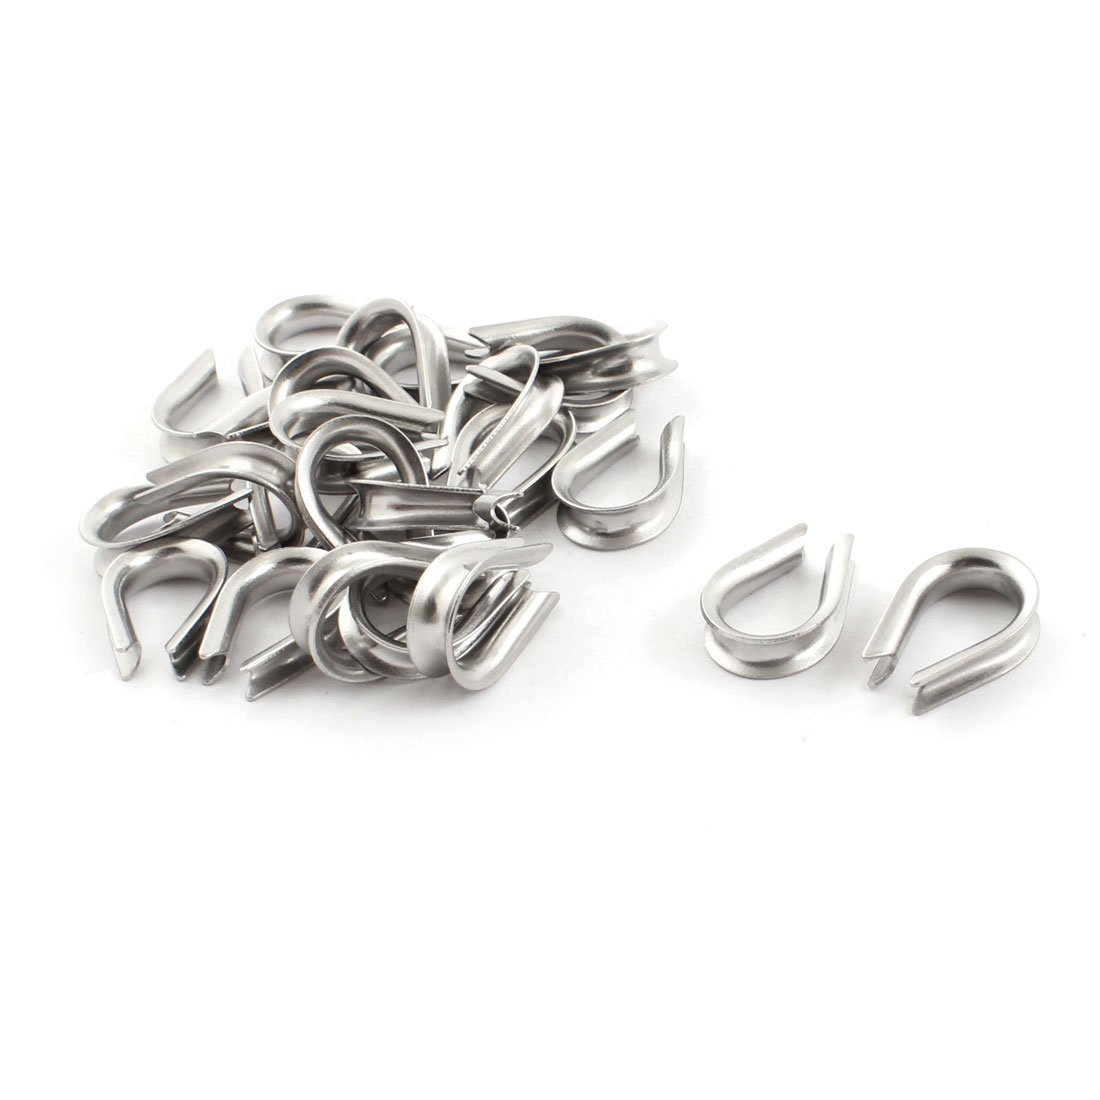 25PCS Silver Tone Stainless Steel Cable Thimbles for 4mm 1/8 Inch Wire Rope